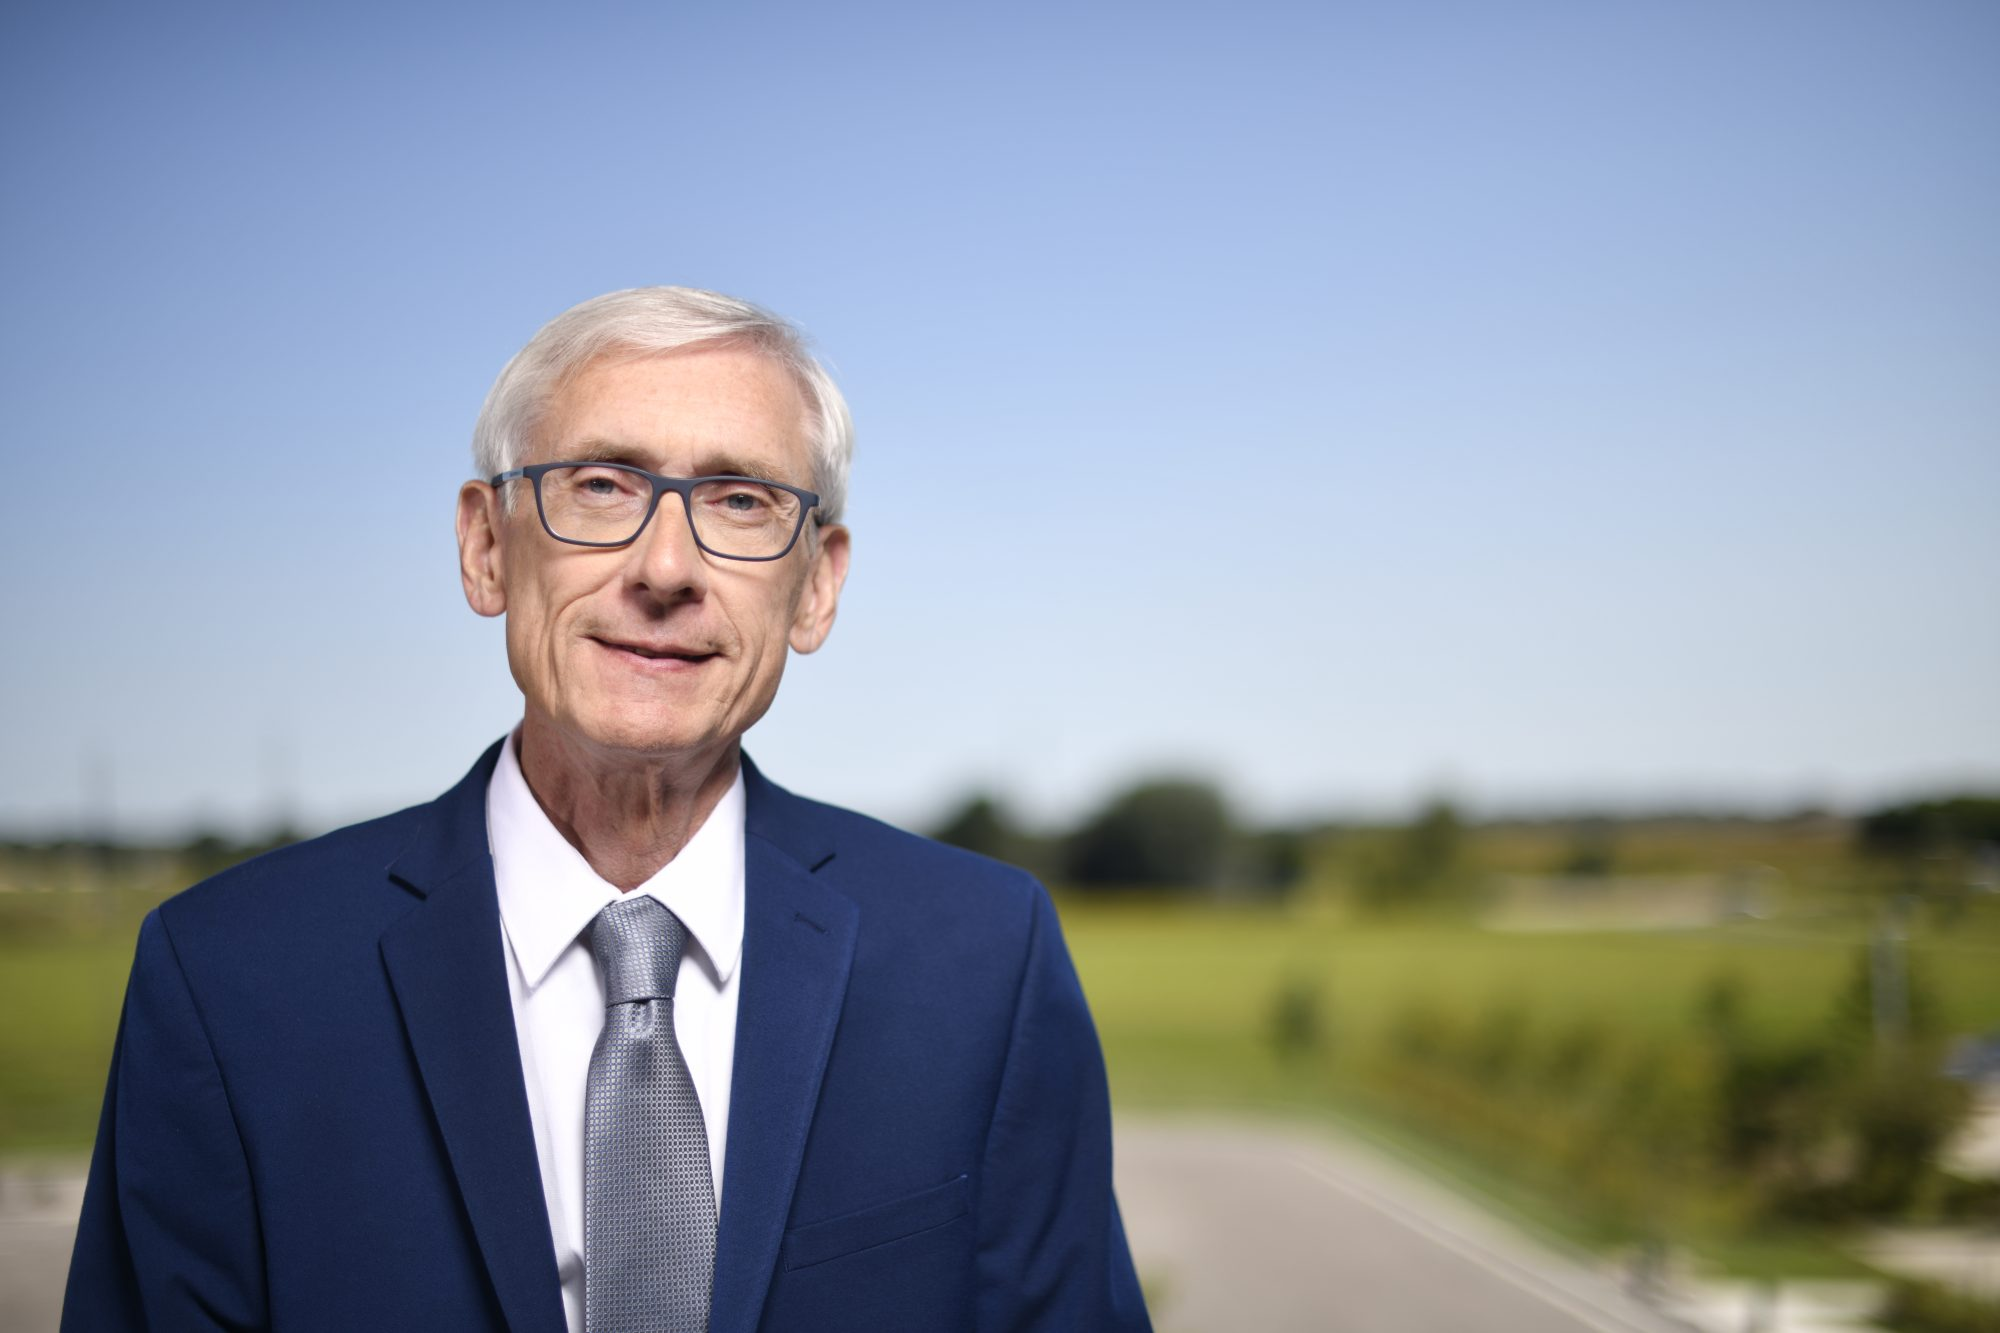 Gov. Evers Announces Badger Bounceback Budget Investments to Support Small Business, Kickstart Innovation